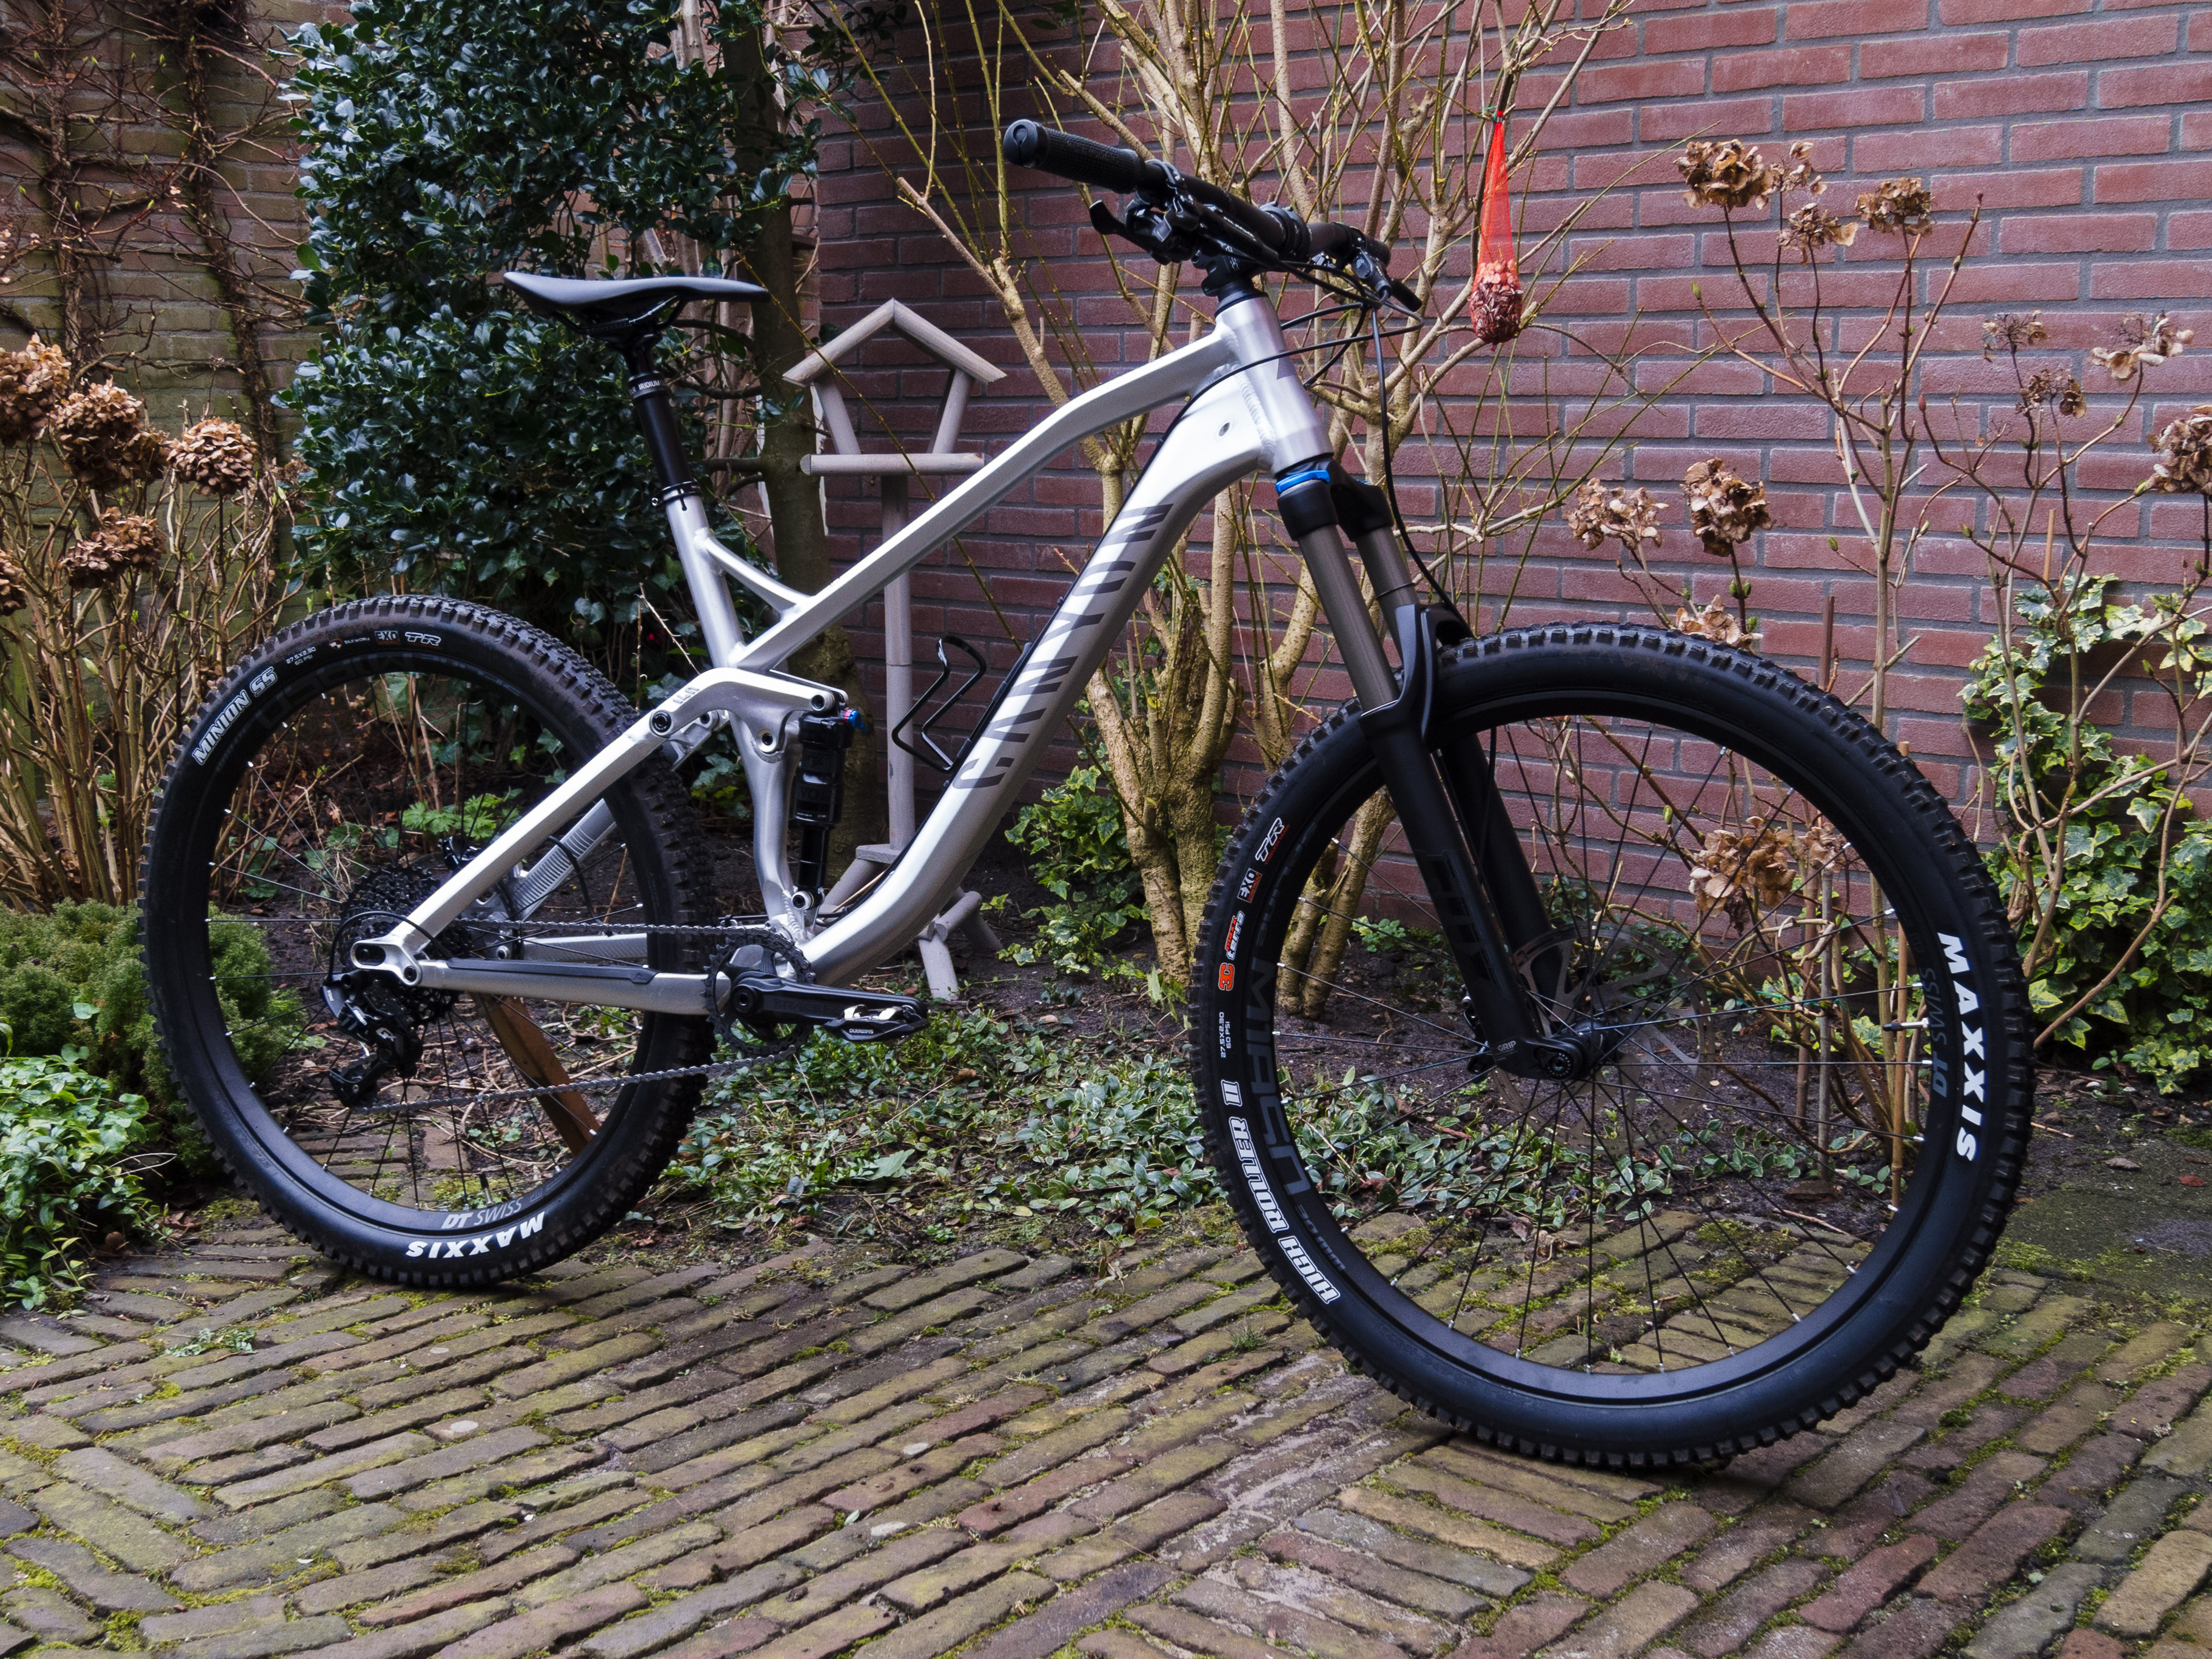 Canyon Spectral | Pimped rides and gear NSMB com photos